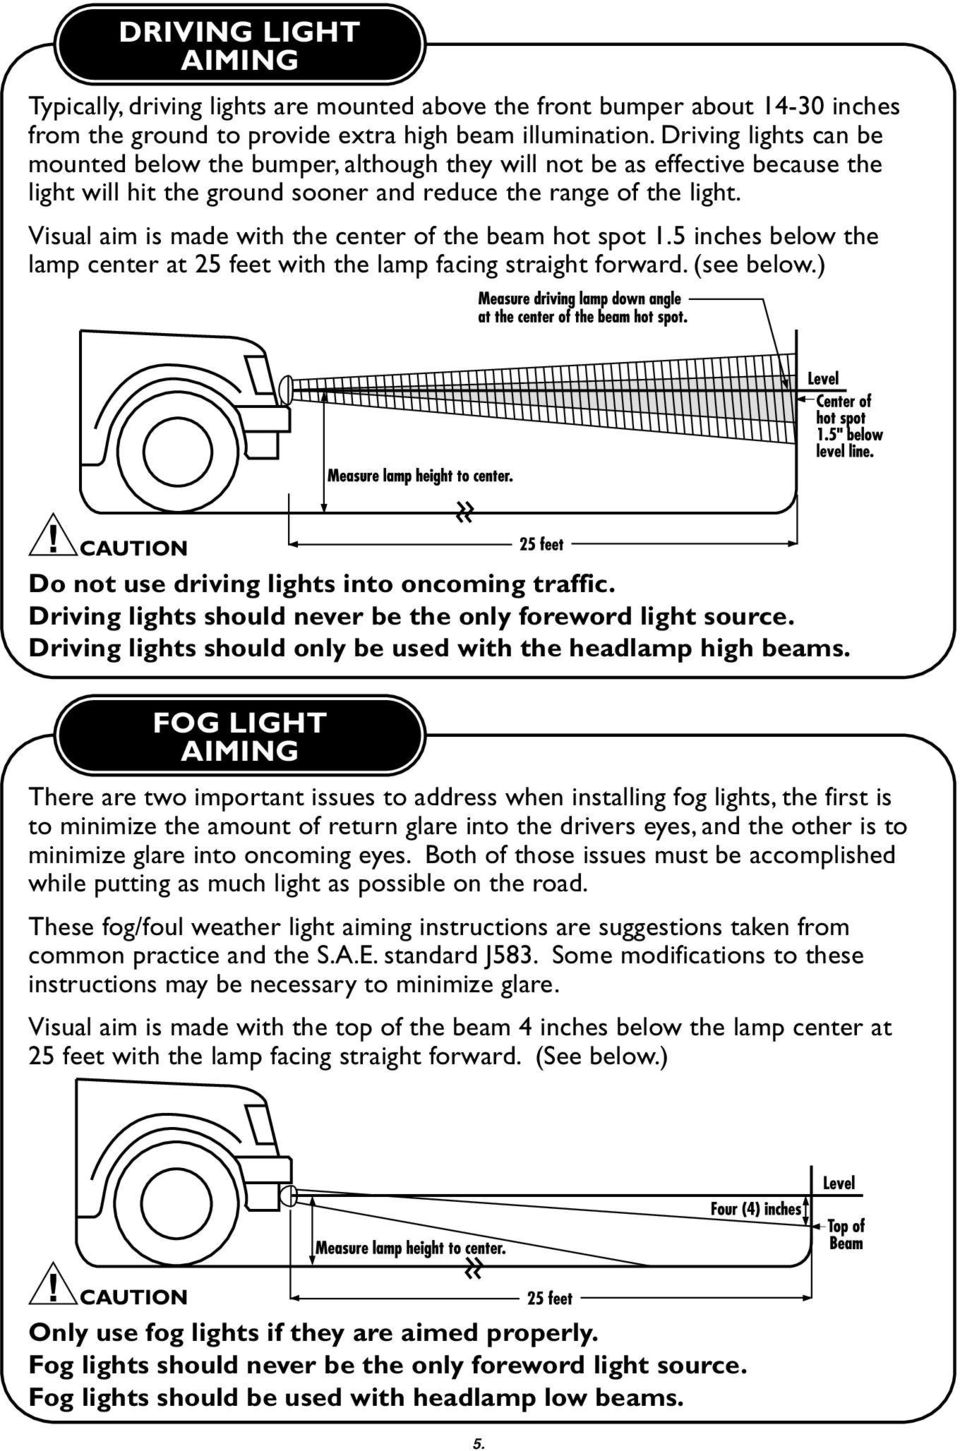 Installation Instructions Pdf Wiring Flood Lights Including Home Gt Lighting Piaa Visual Aim Is Made With The Center Of Beam Hot Spot 15 Inches Below 7 Lamp Service 520